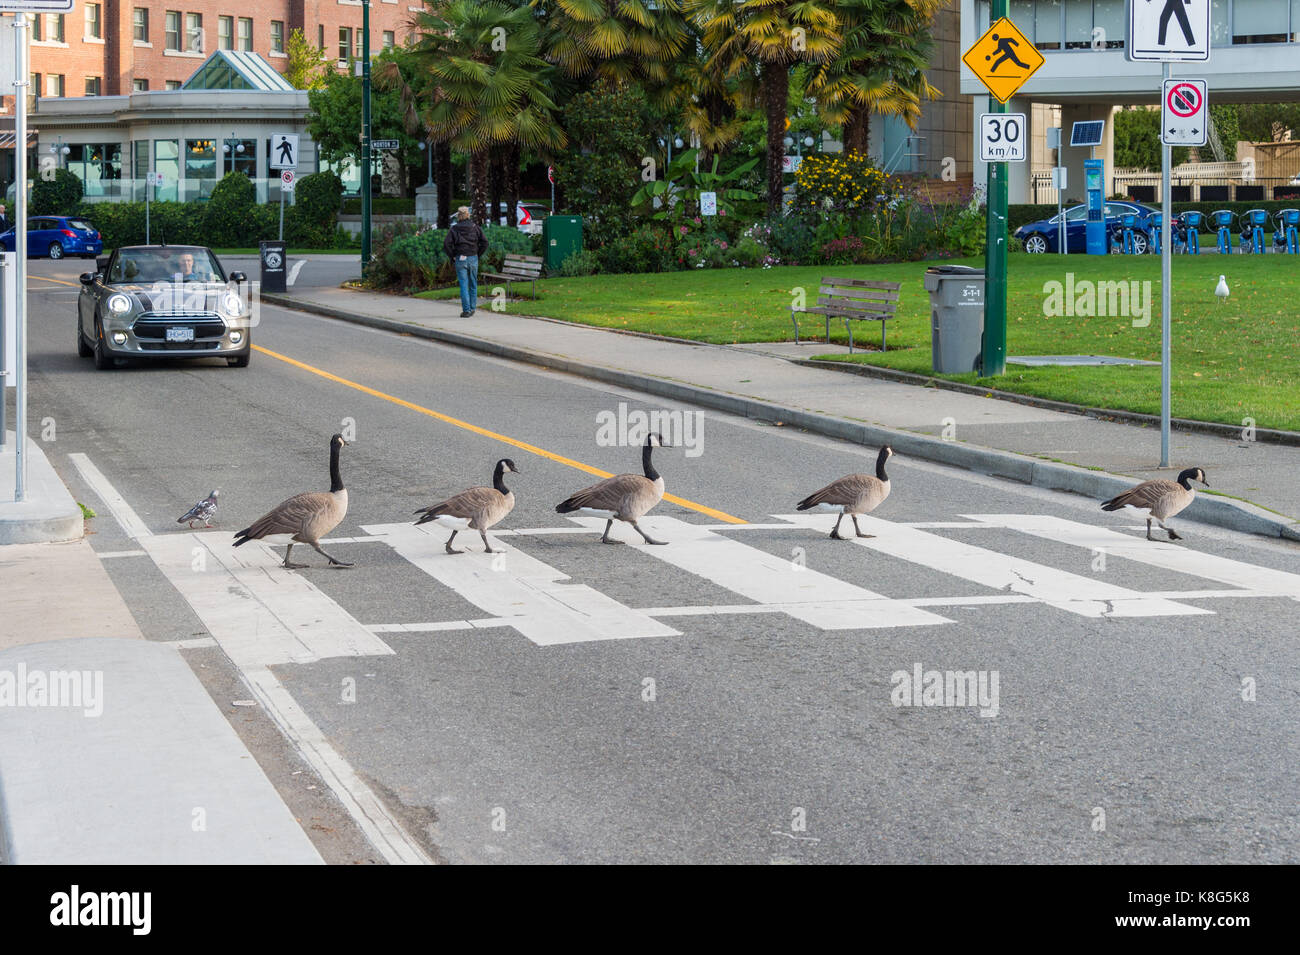 Vancouver, British Columbia, Canada - 13 September 2017: Canada geese crossing a road on a zebra crossing while Stock Photo